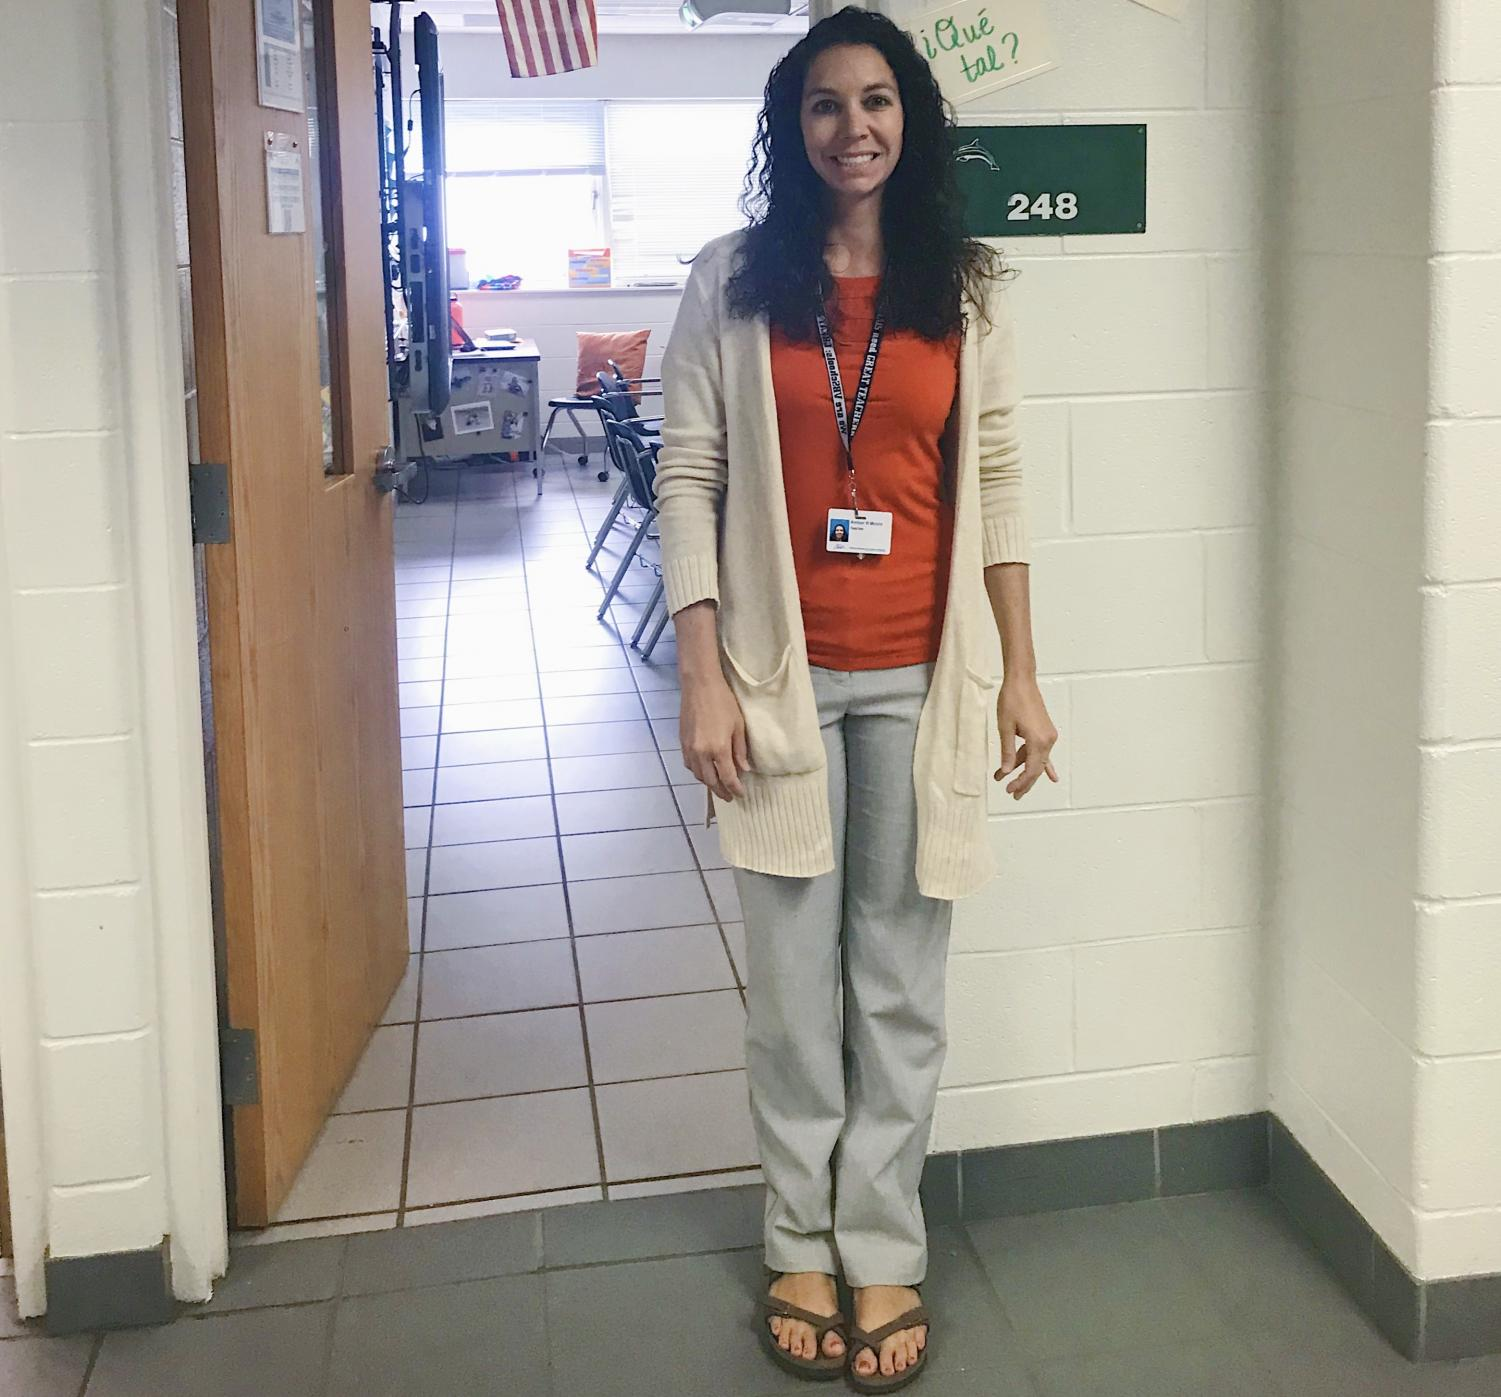 Amber Moore poses in front of her classroom, 248, on Oct. 21.